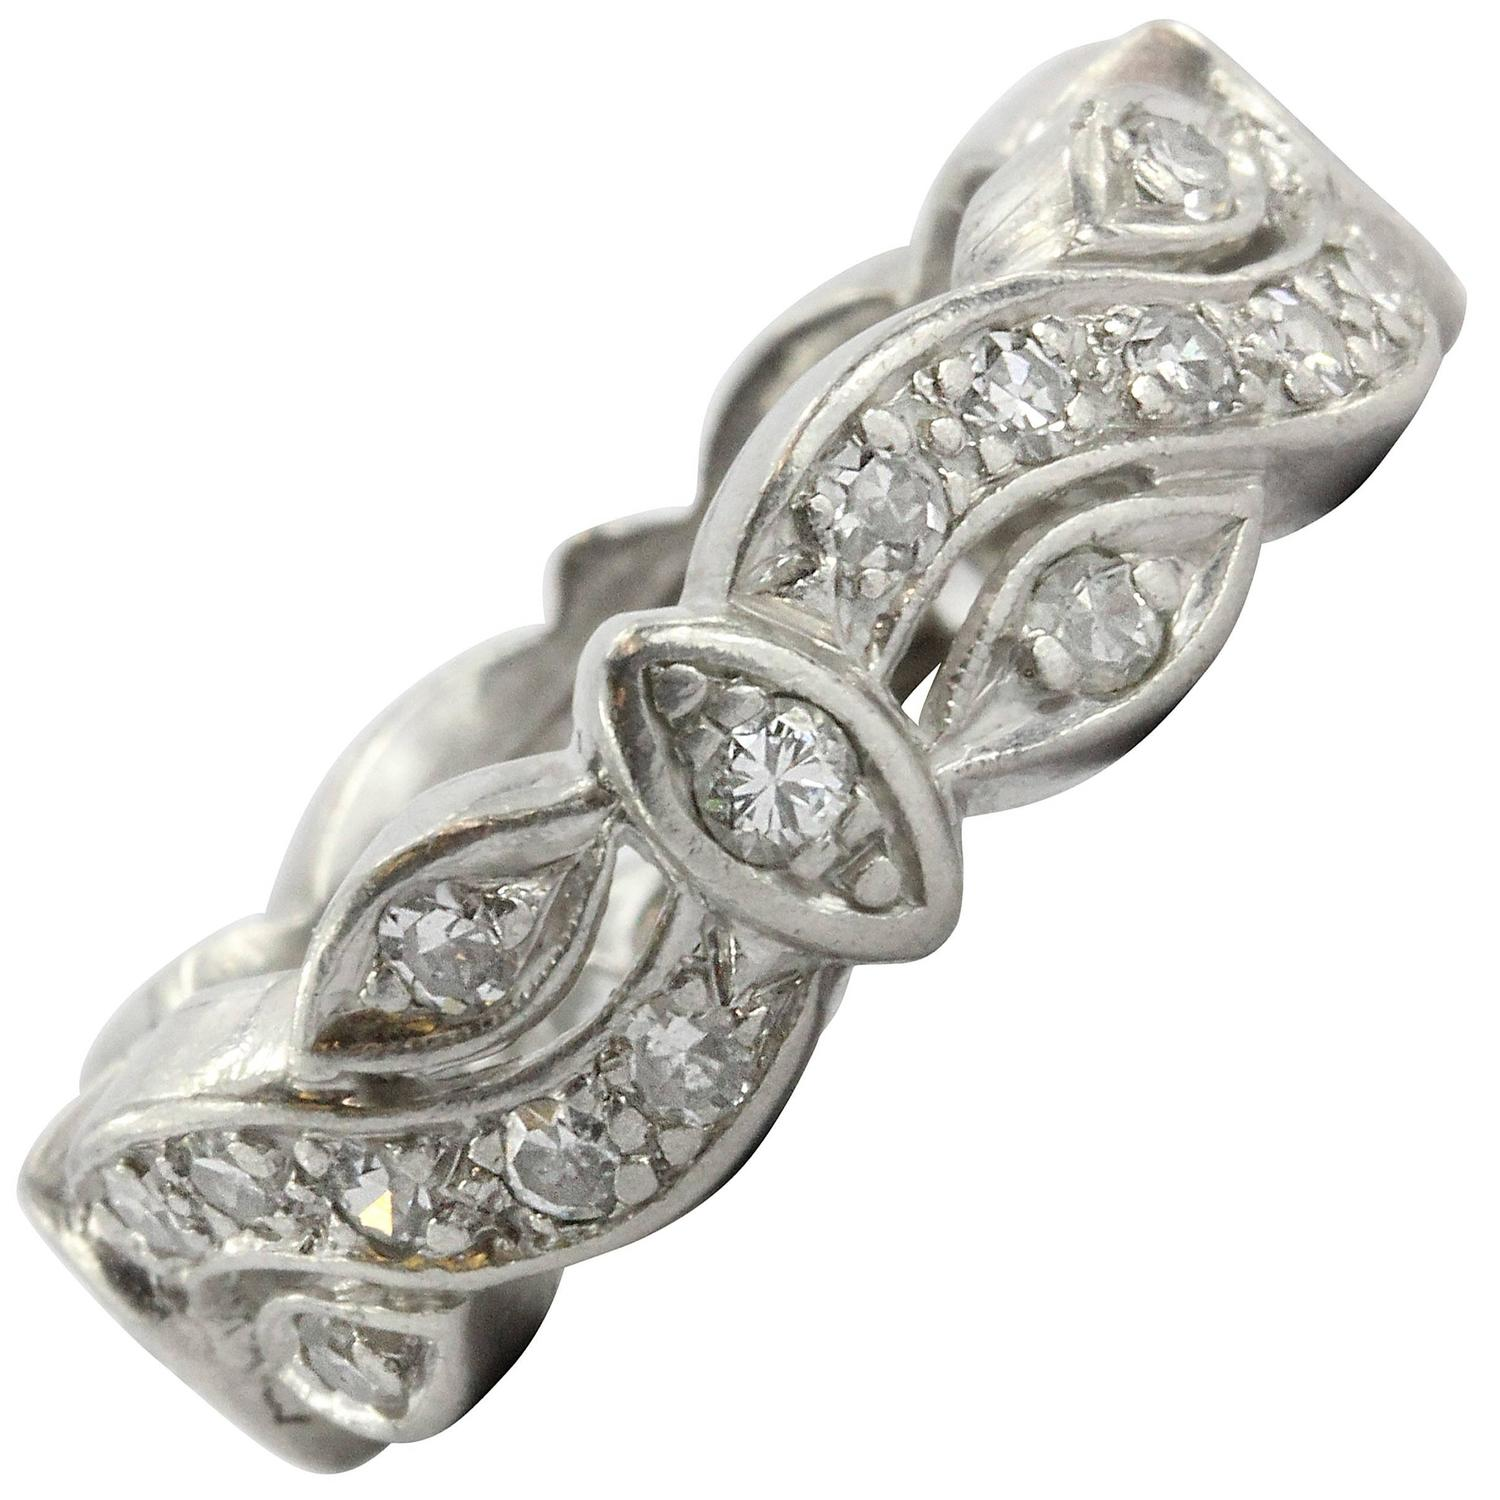 1930s Art Deco Platinum Antique European Cut Diamond Wedding Band at